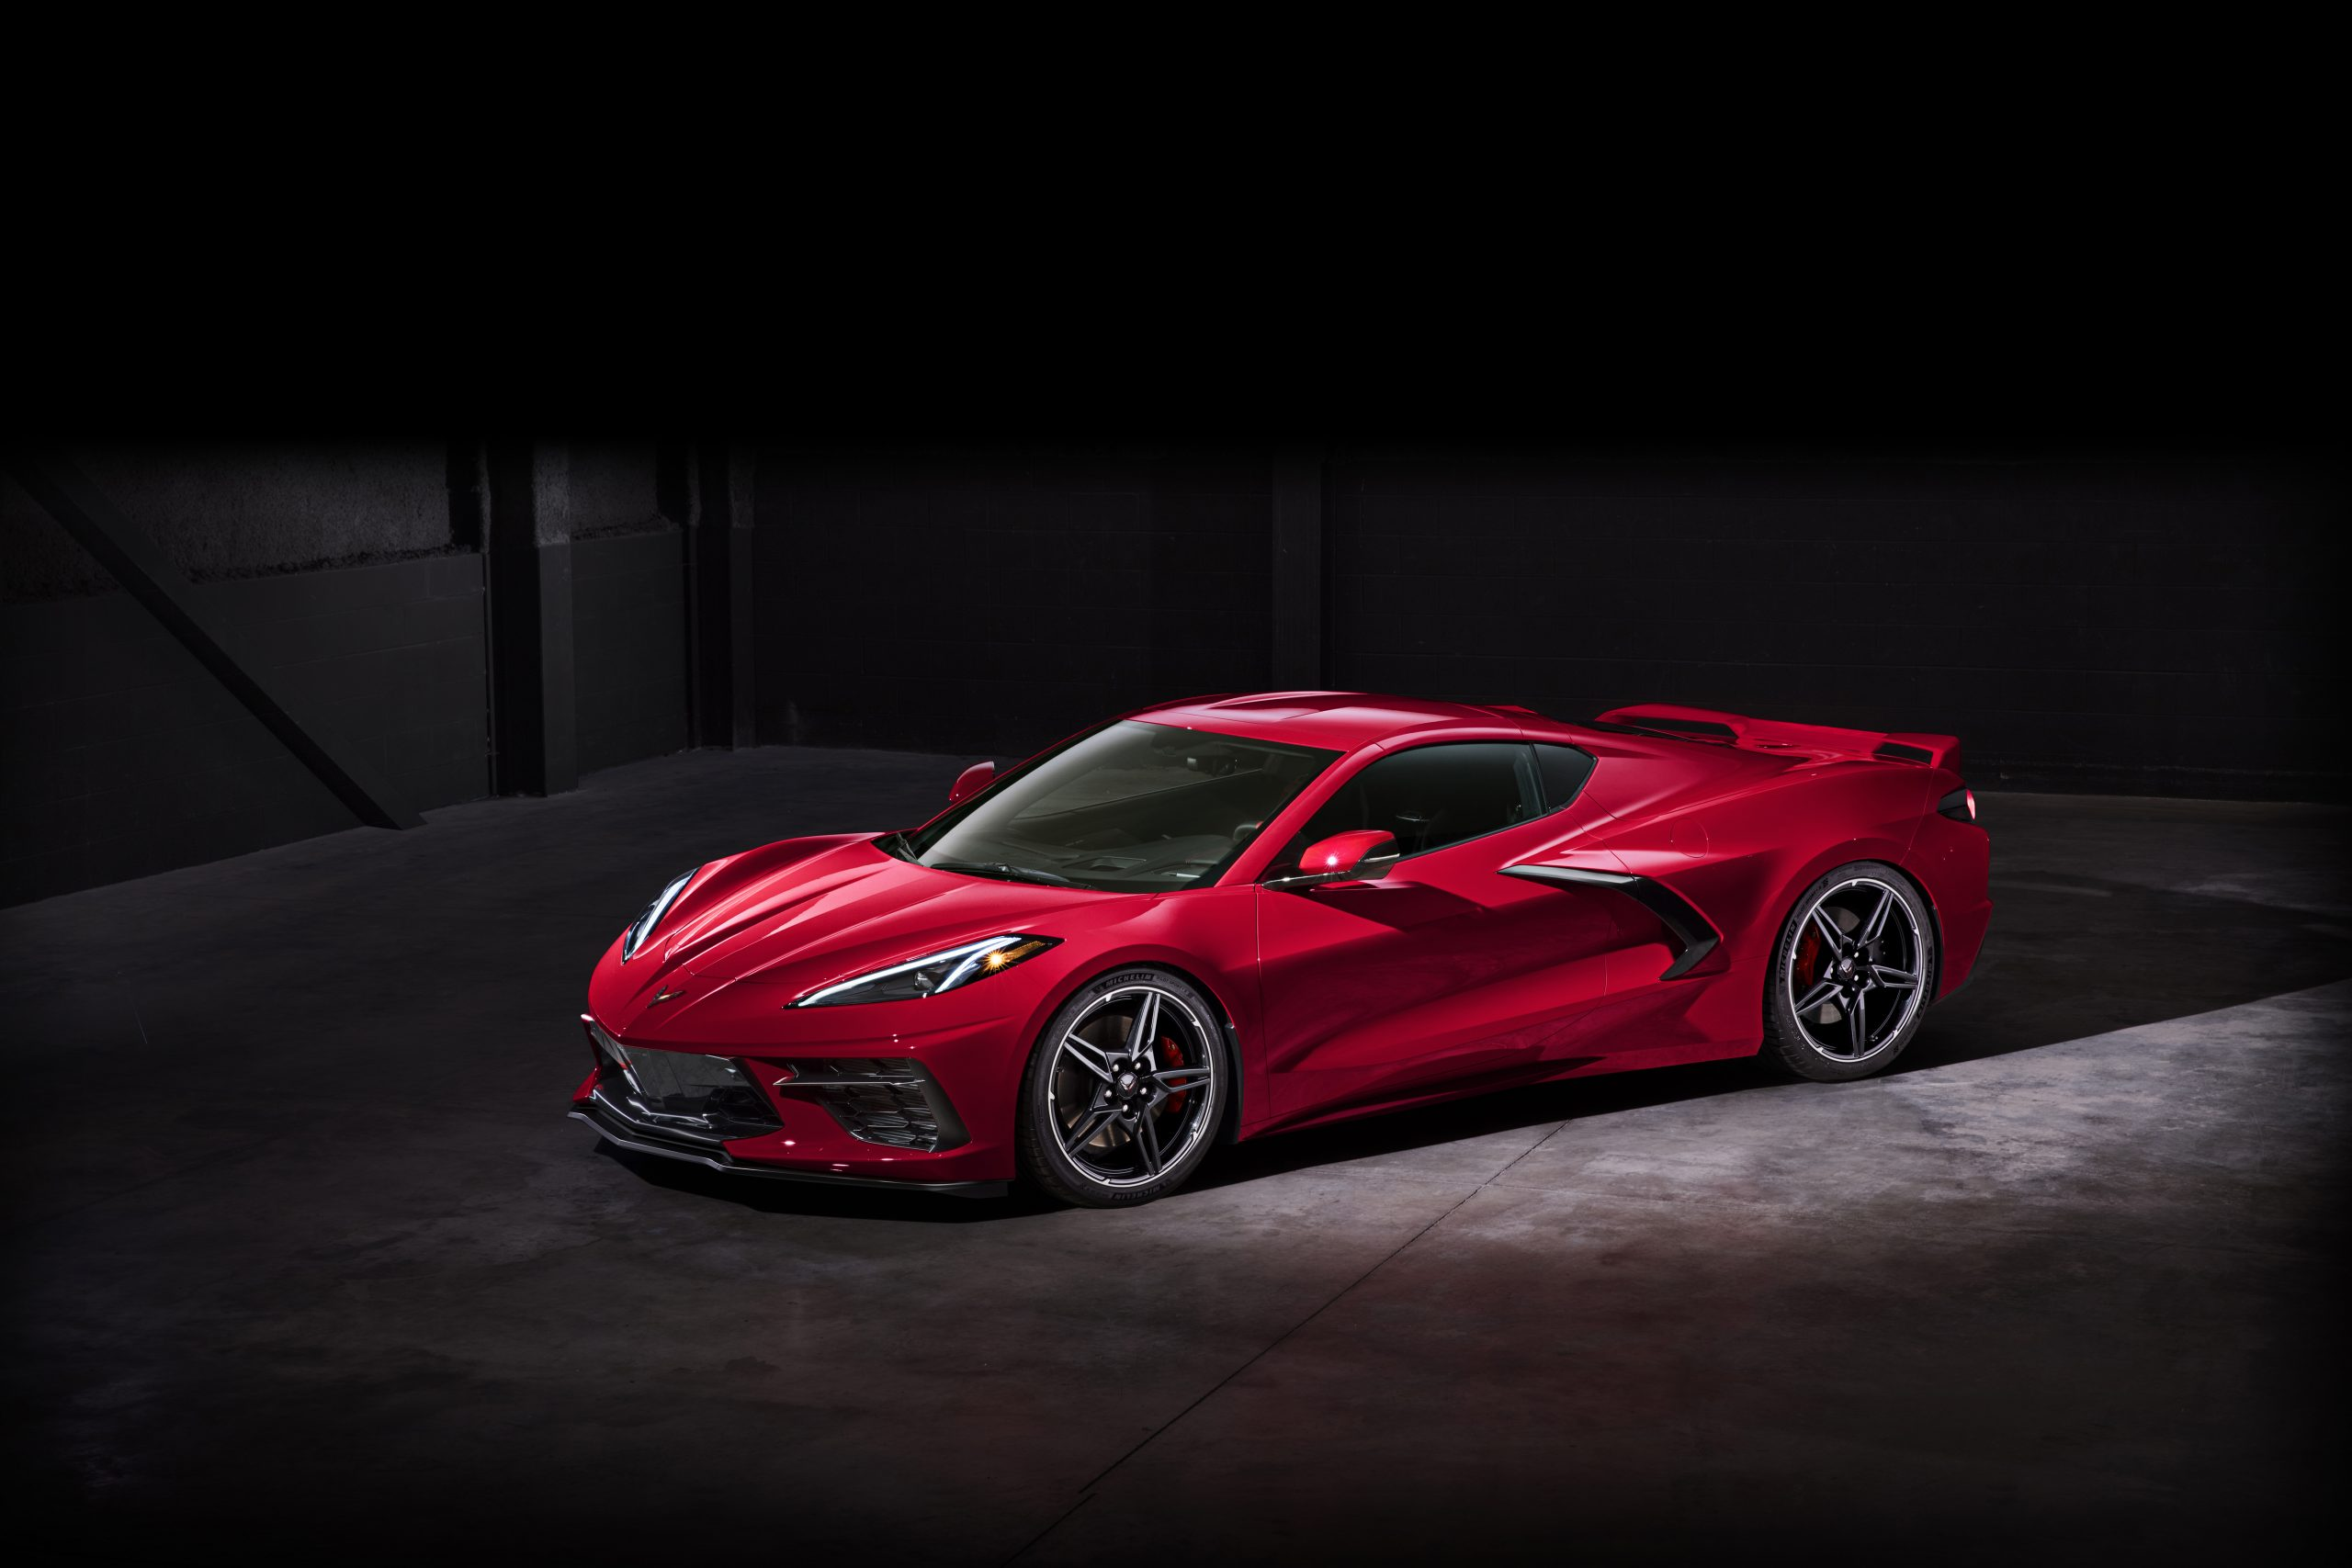 Chevrolet Introduces First-Ever Mid-Engine Corvette 2021 Chevy Corvette Used, Warranty, Weight